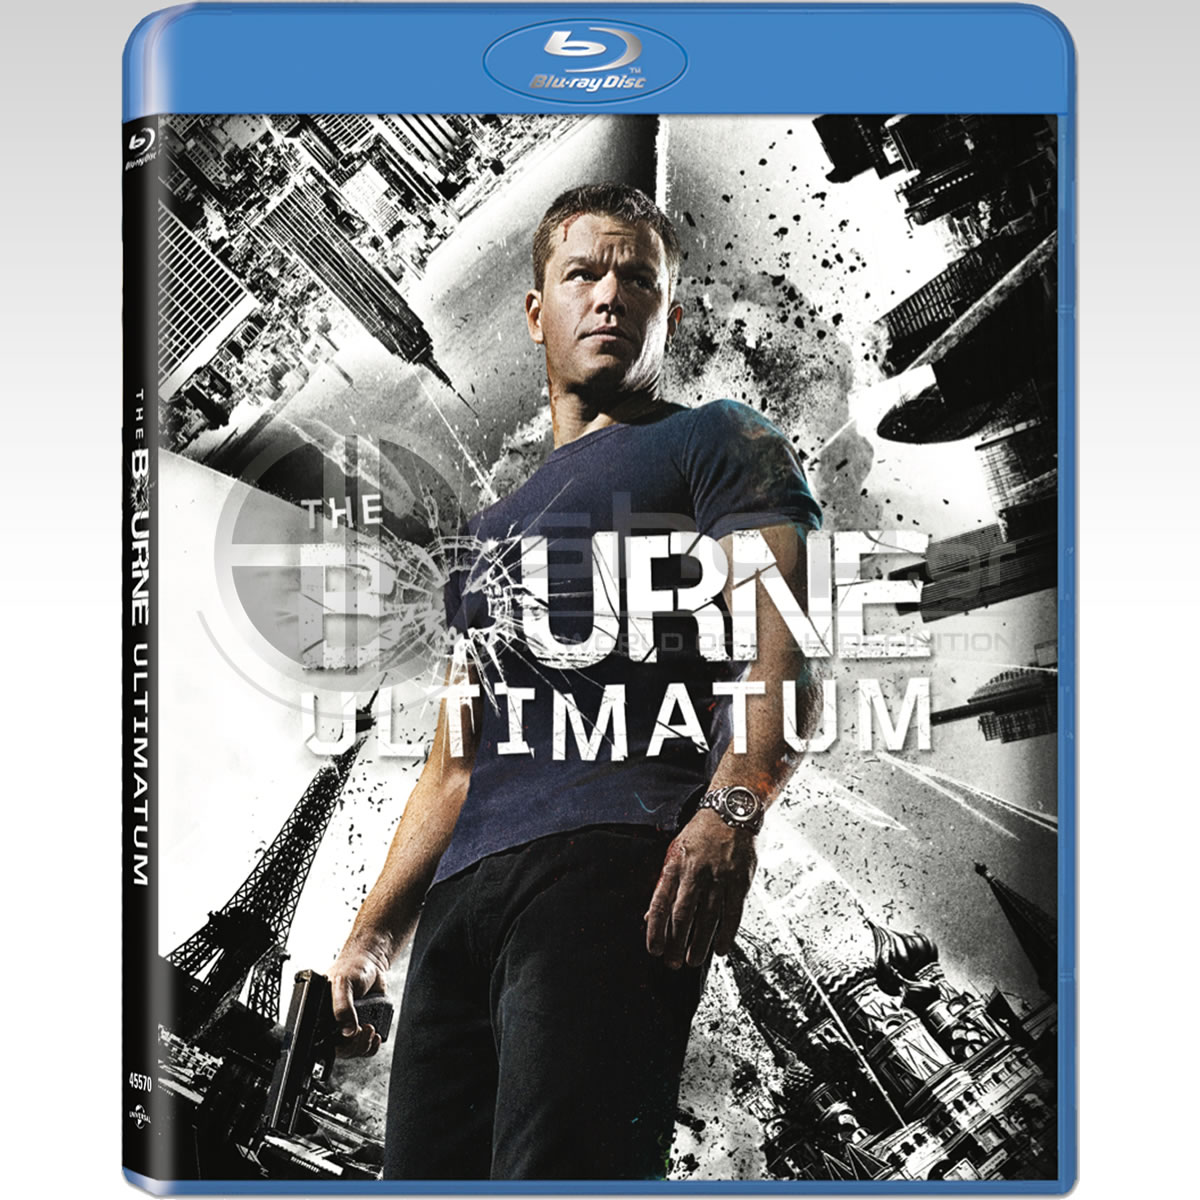 THE BOURNE ULTIMATUM - ΤΟ ΤΕΛΕΣΙΓΡΑΦΟ ΤΟΥ ΜΠΟΡΝ Bullet Special Edition (BLU-RAY)